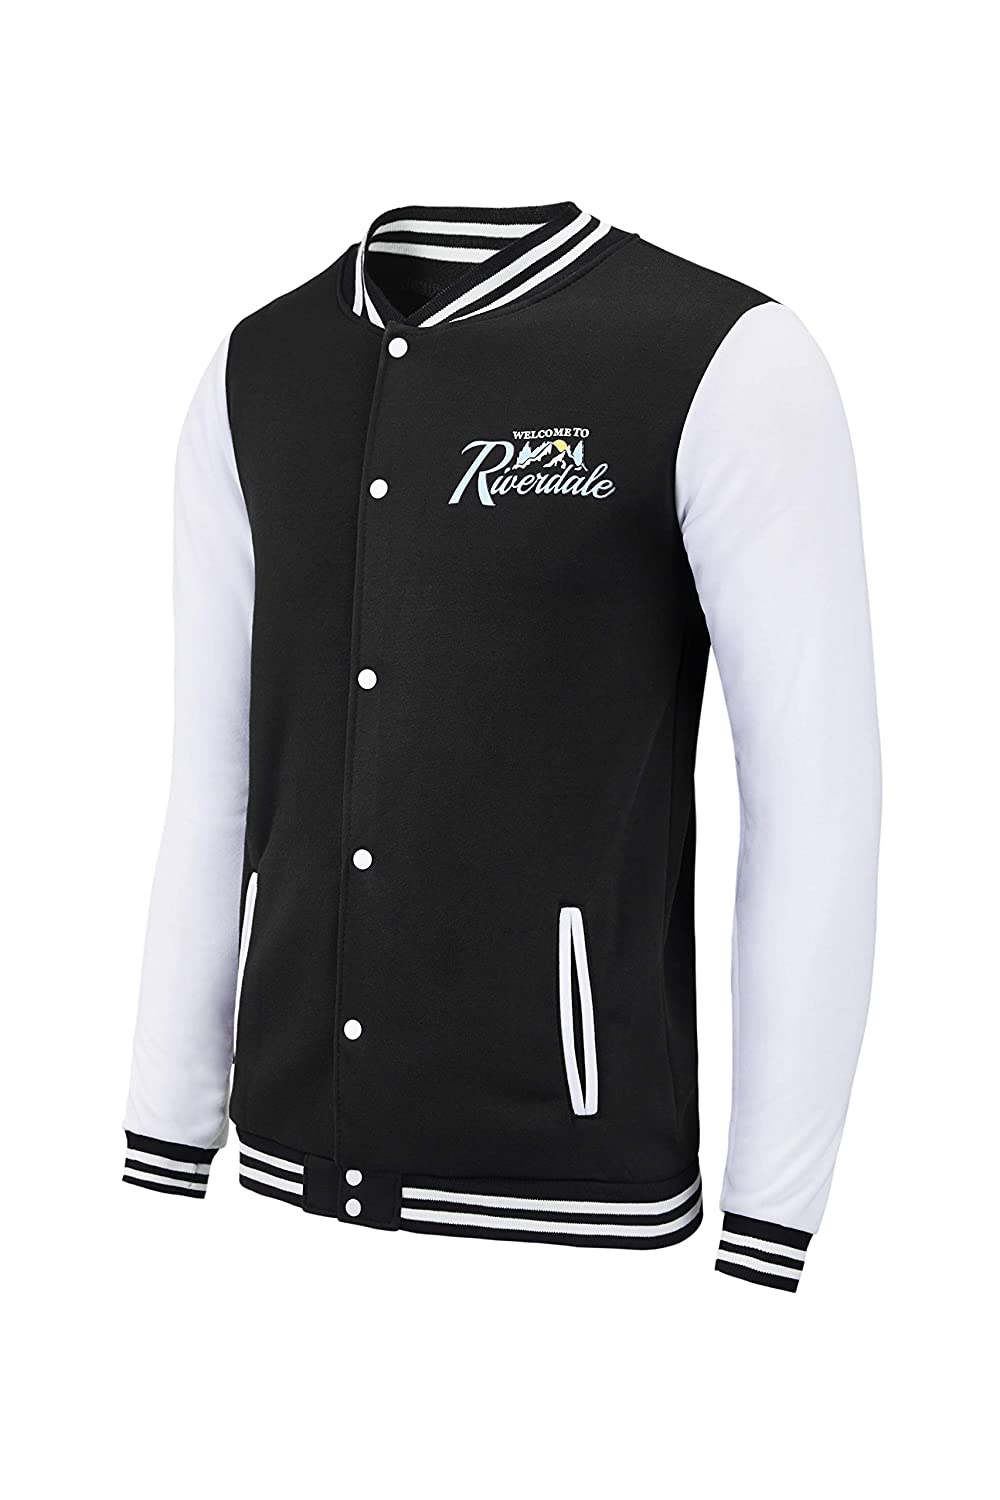 TRIFUNESS Unisex Riverdale Jacket -Southside Serpents Varsity Jacket Long Sleeves